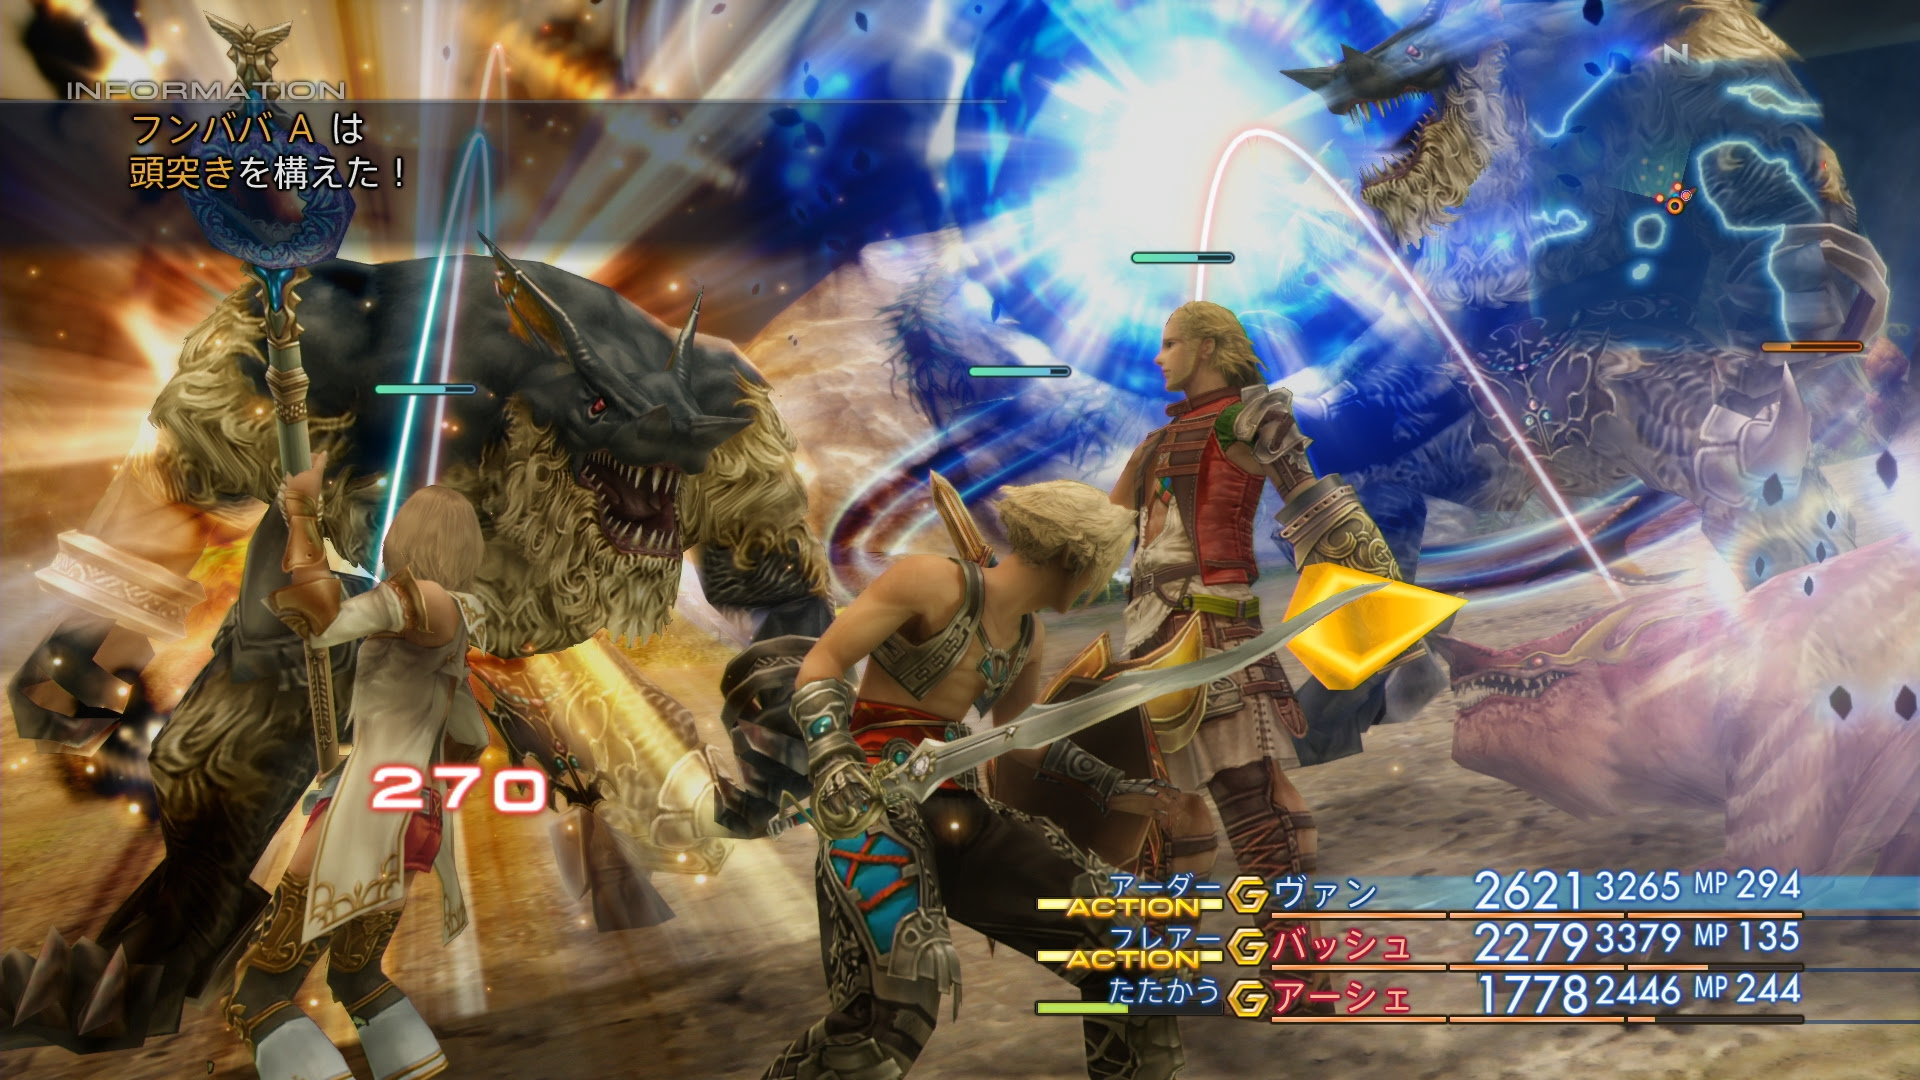 Get To Know Final Fantasy Xii The Zodiac Age In Another 120